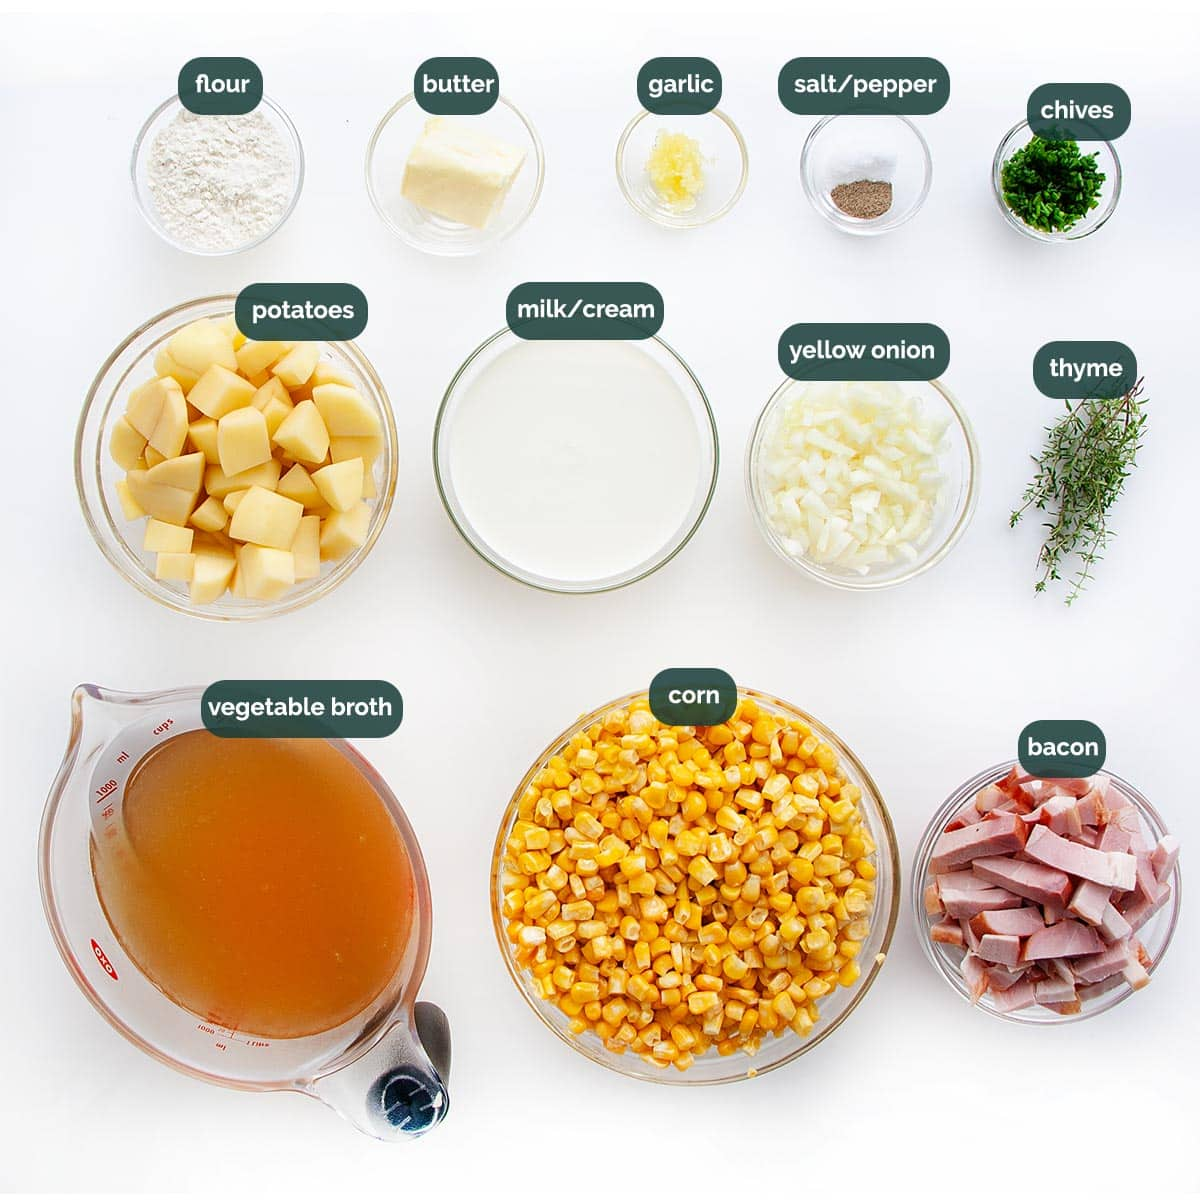 overhead shot of all ingredients needed to make corn chowder.